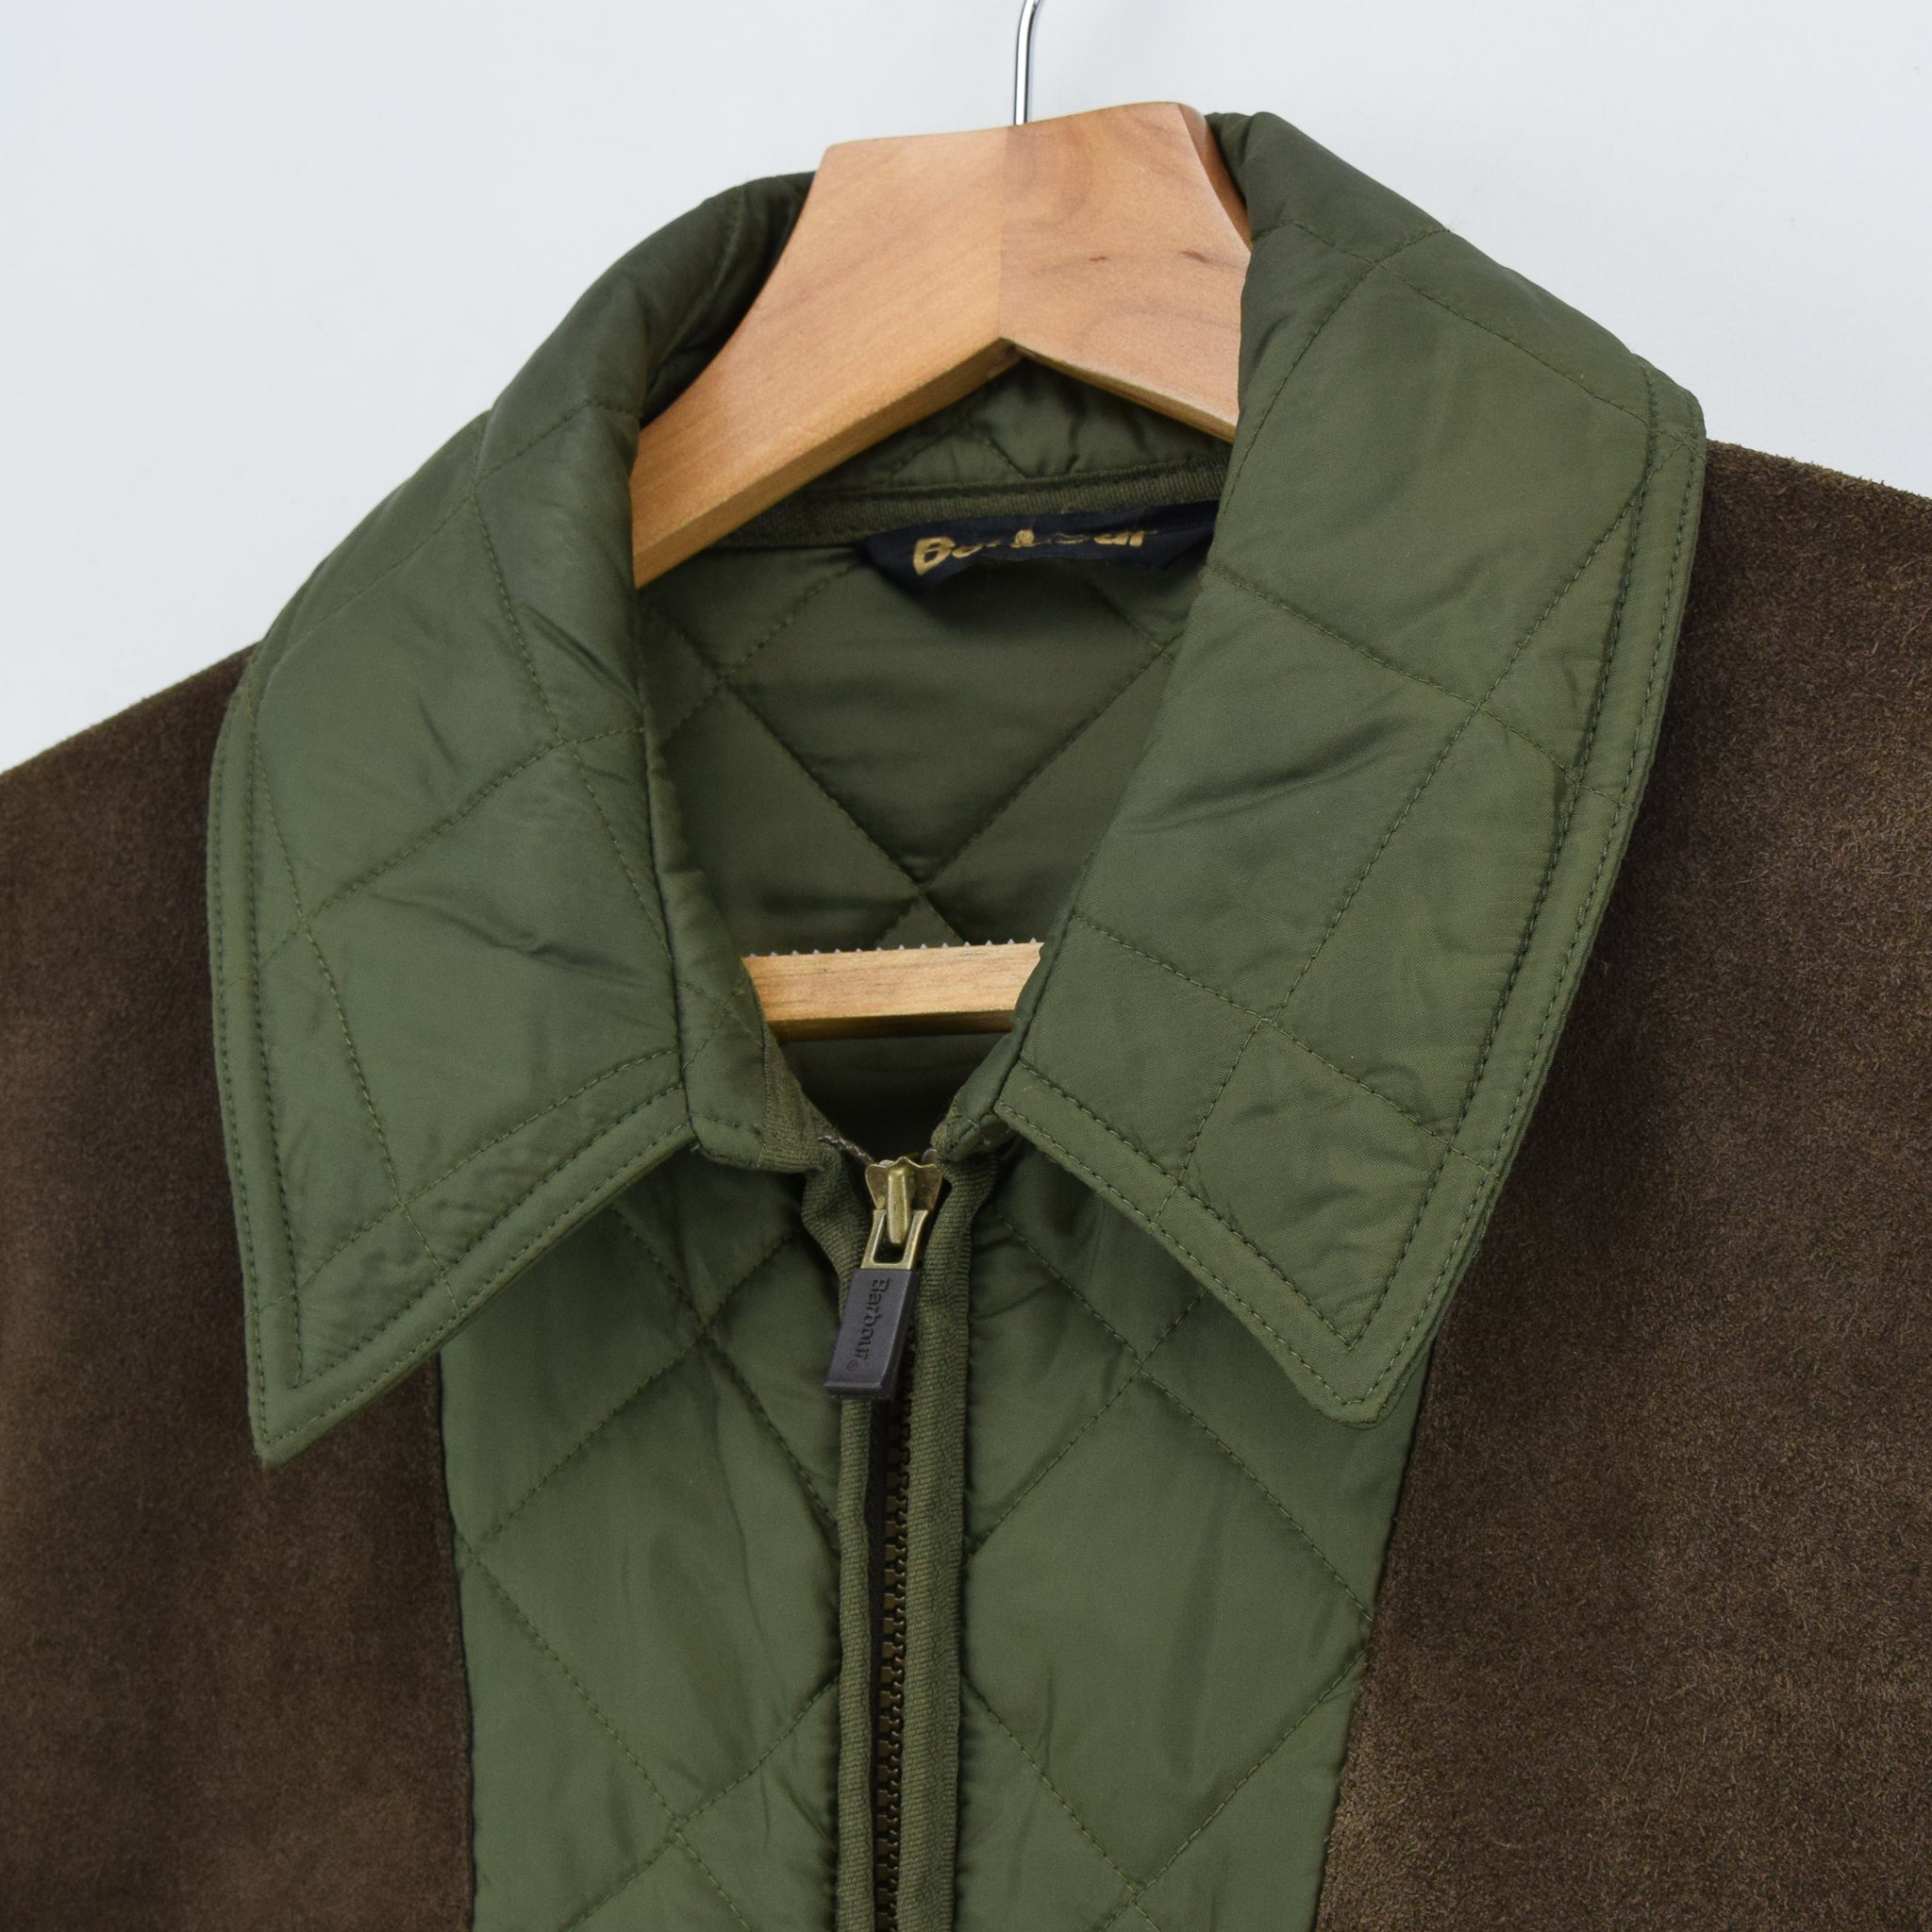 Barbour New Keeperwear Hunting Green Quilted Shooting Jacket Suede Patches M collar